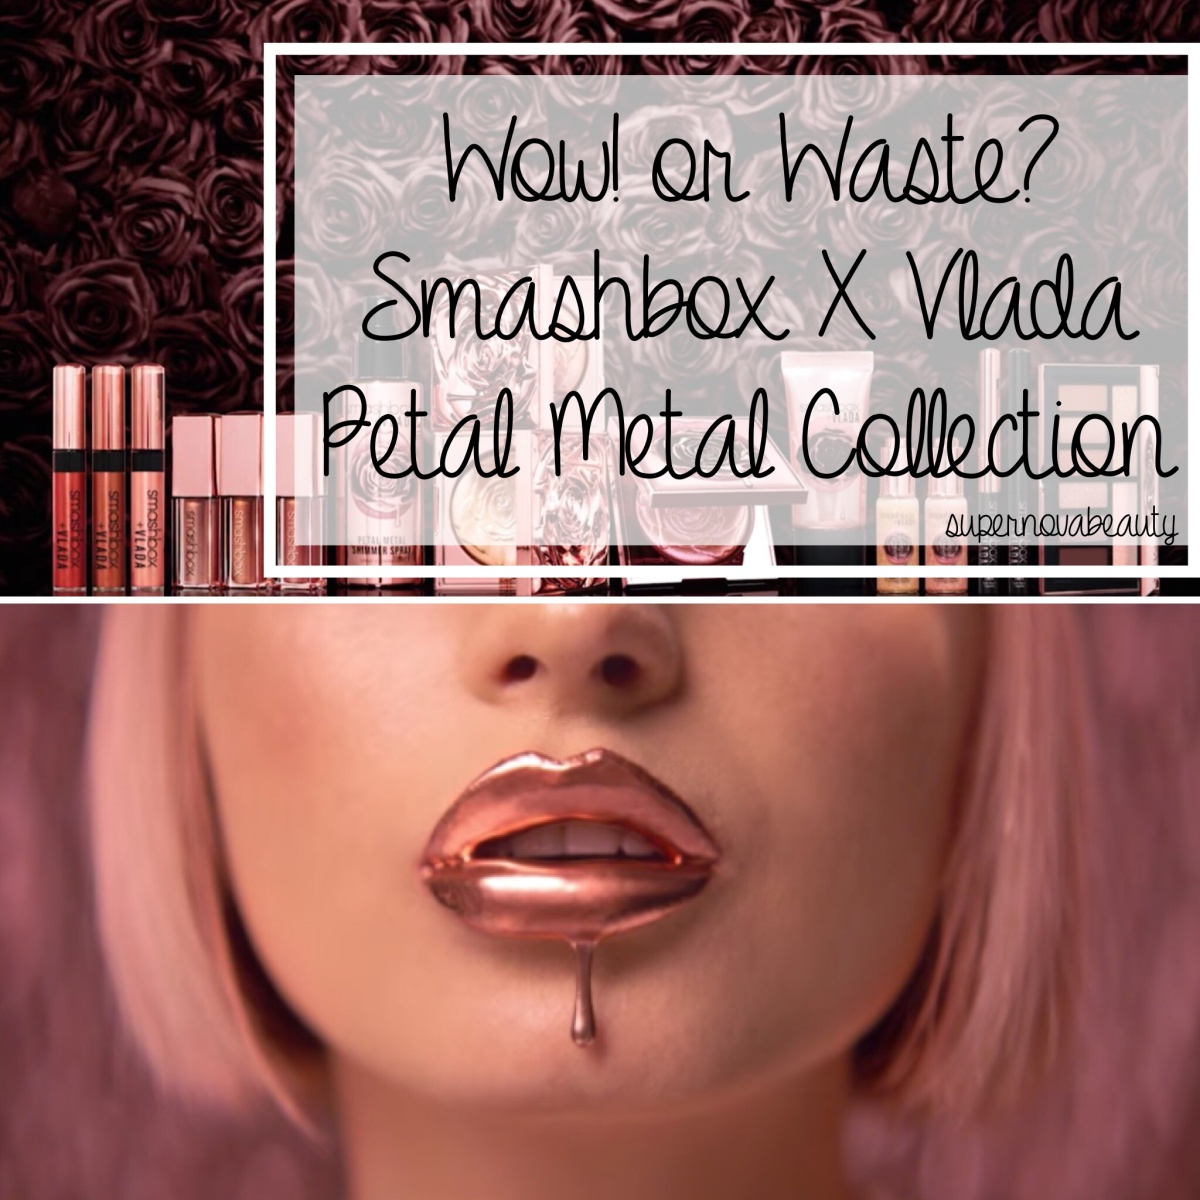 Wow! or Waste? Smashbox X Vlada Petal Metal Collection